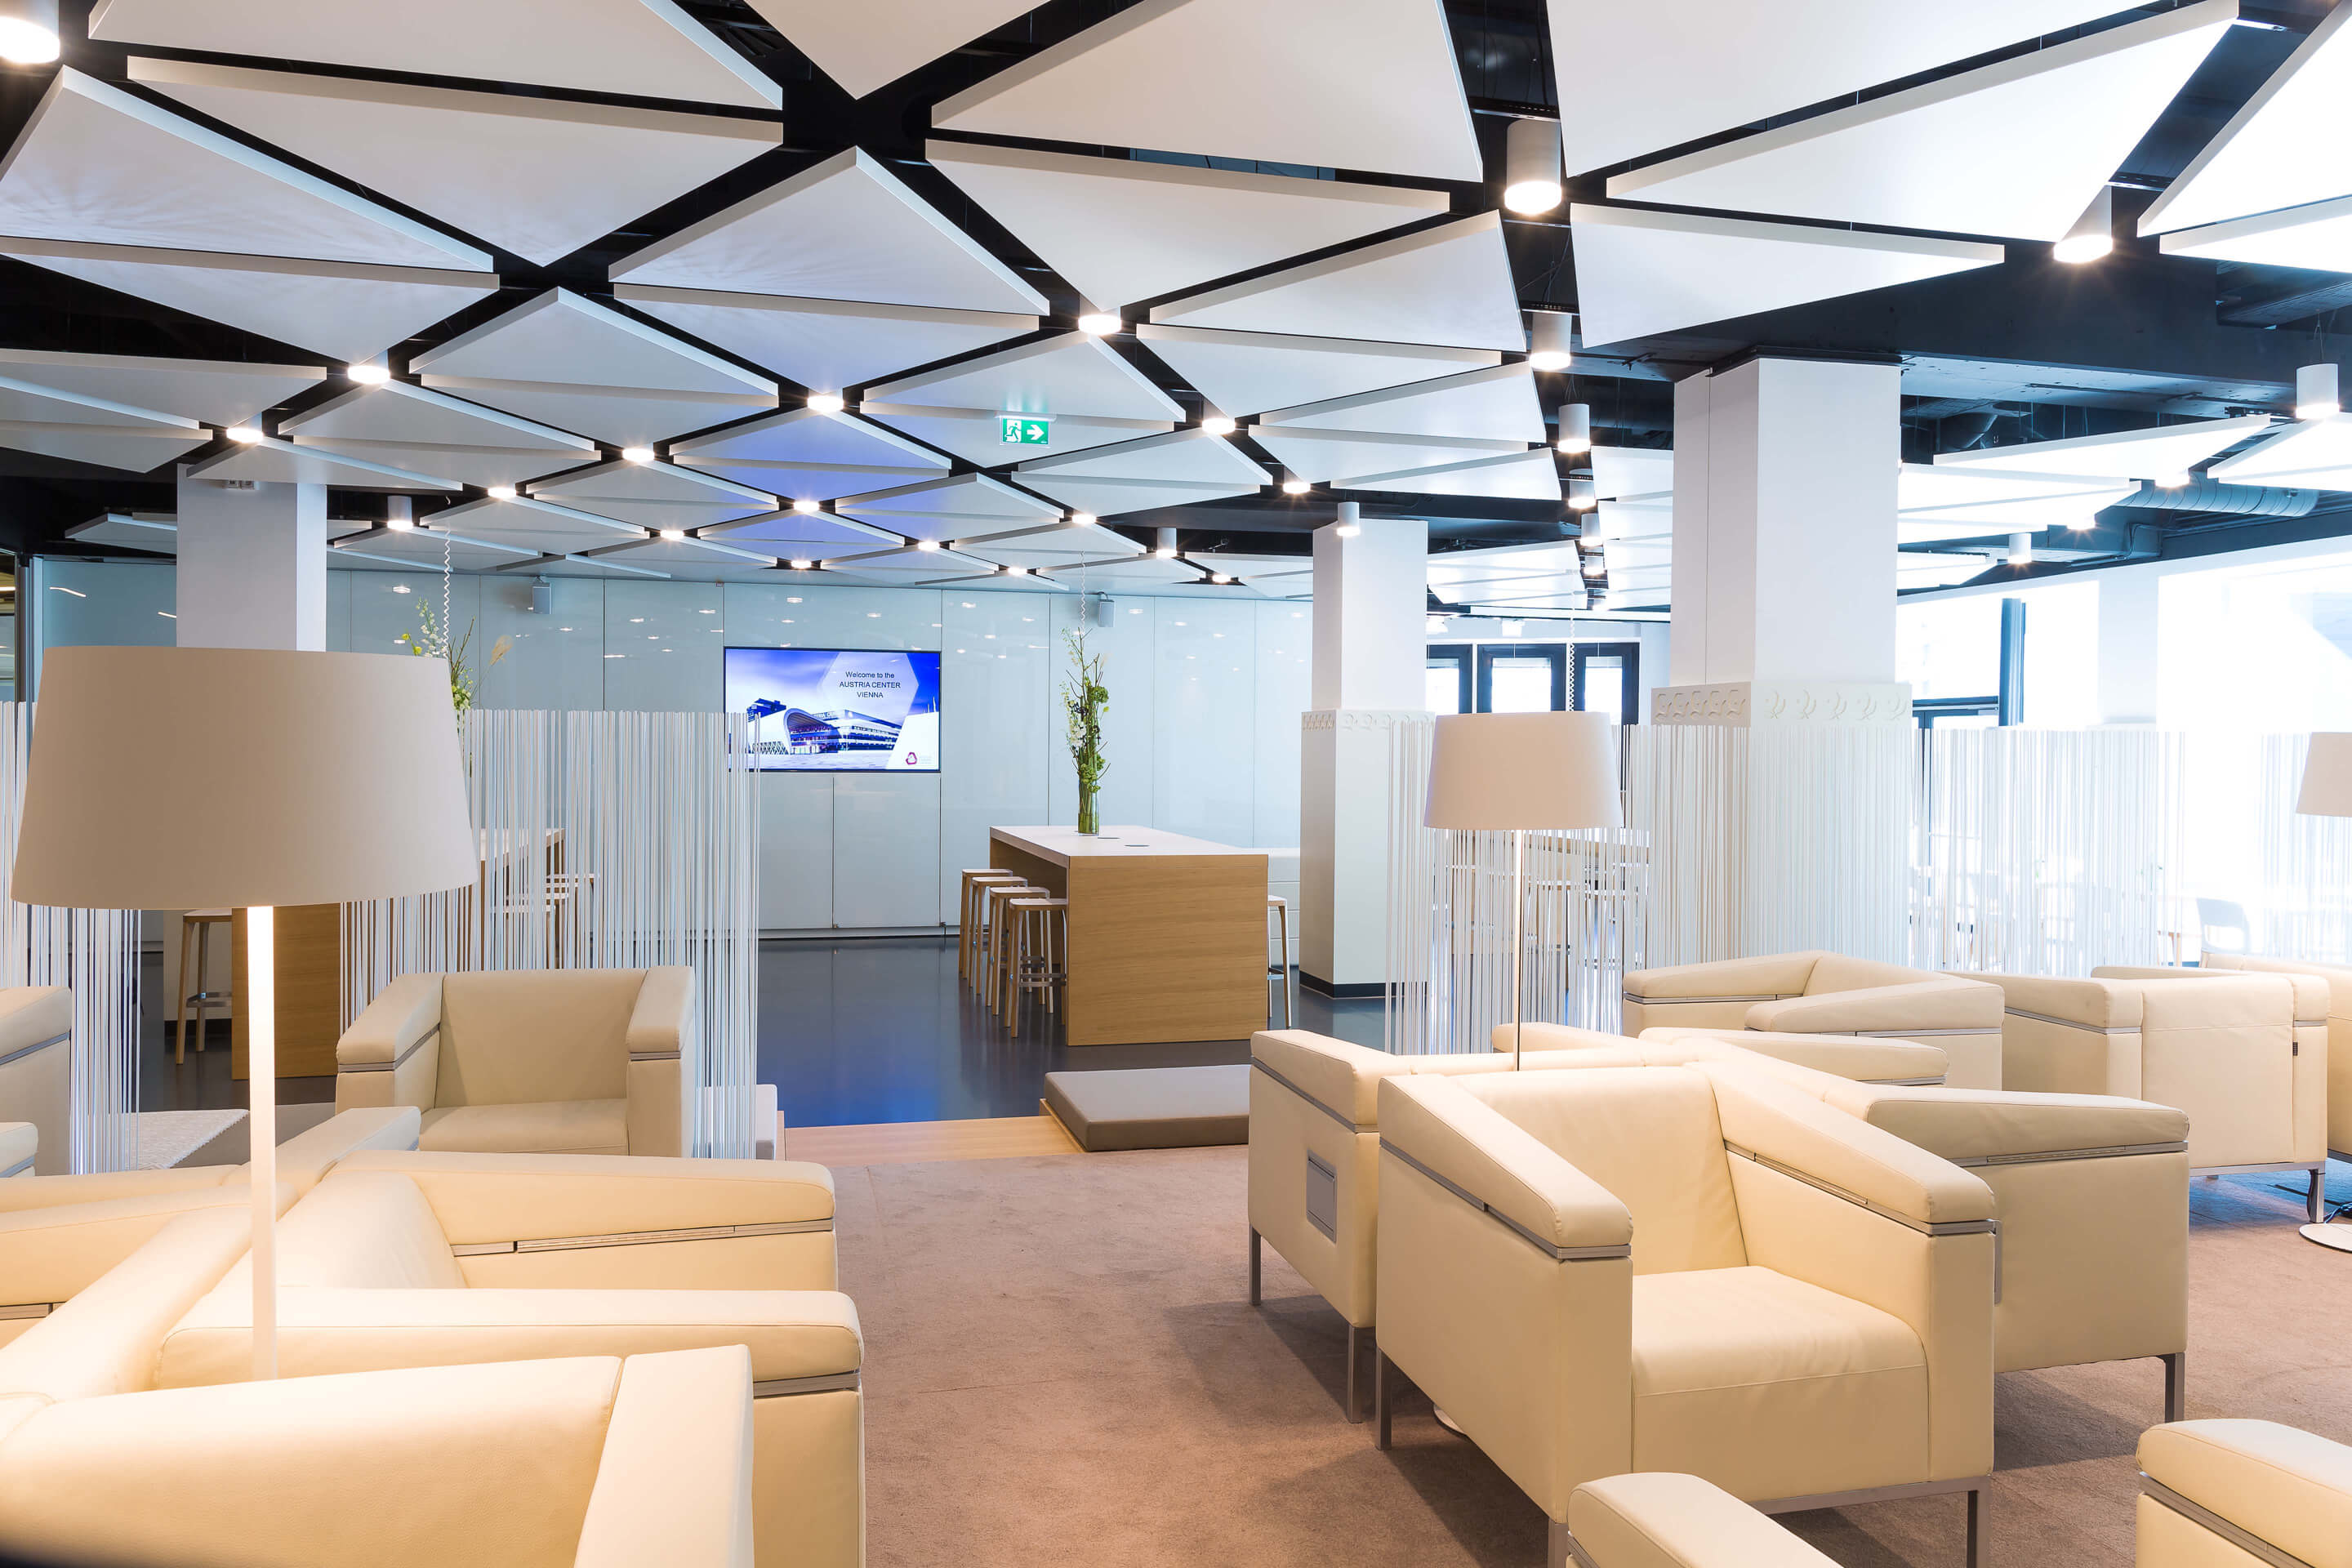 Foto: Raum Level 0 Business Lounge